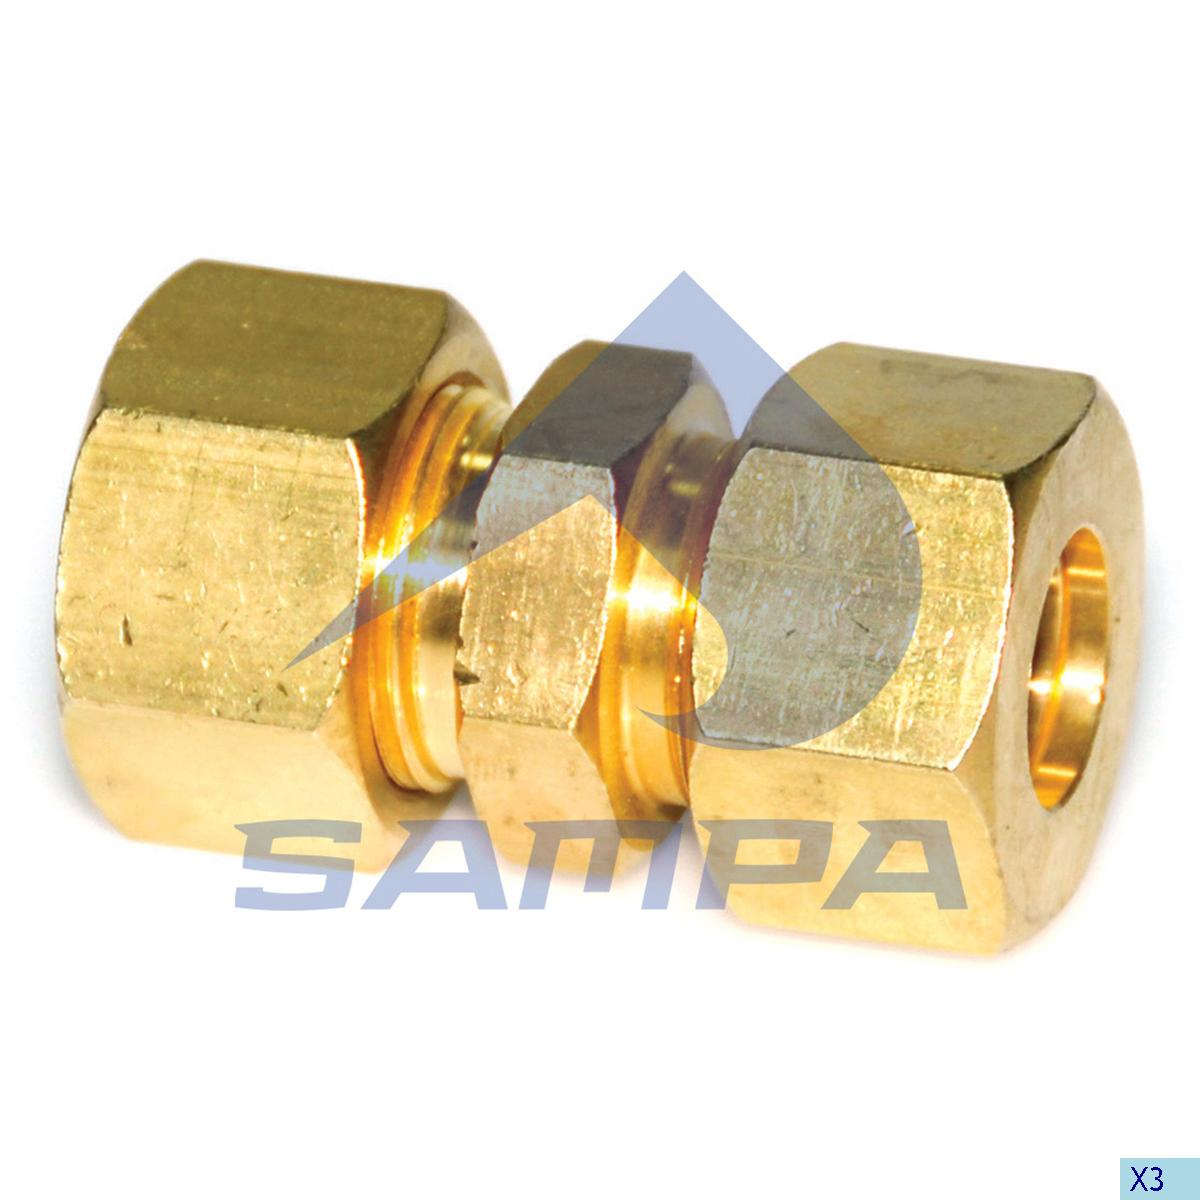 Straight Coupling, Universal, Universal Parts